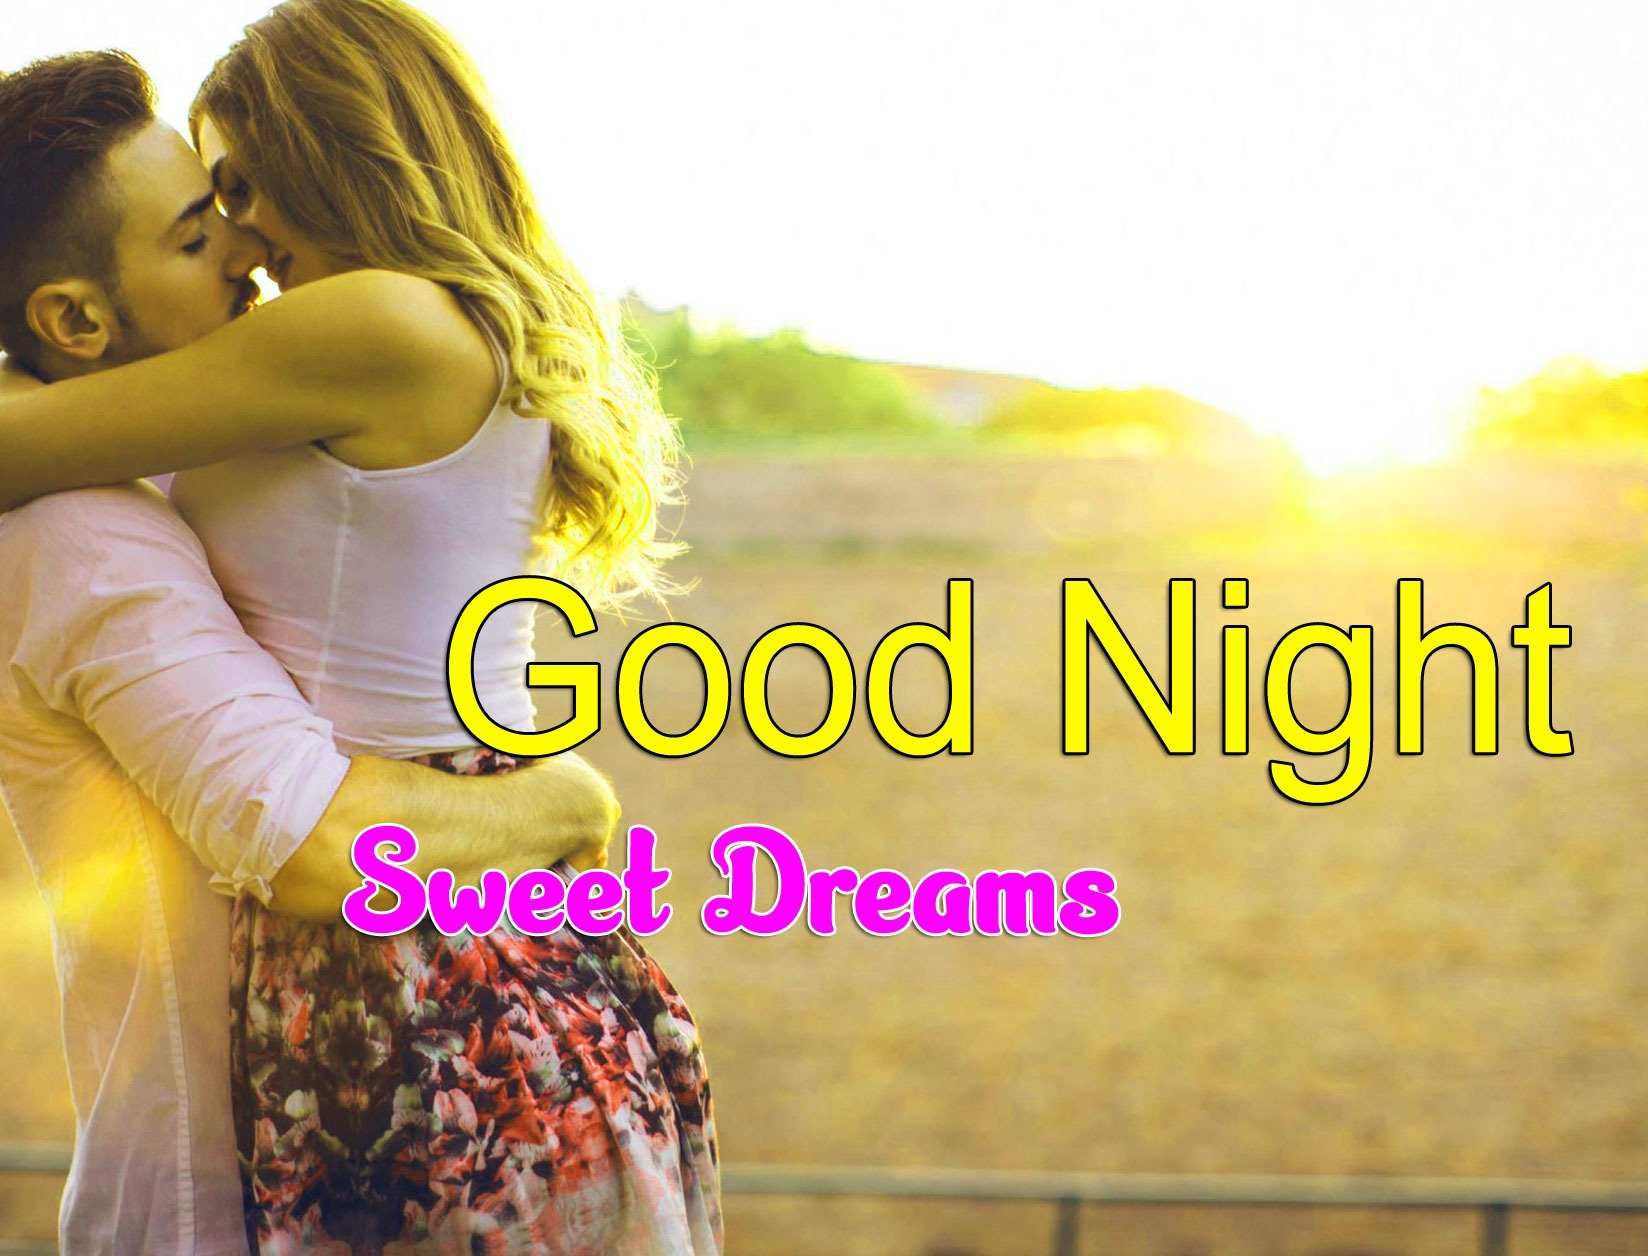 Girlfriend Good Night Wishes Wallpaper Download